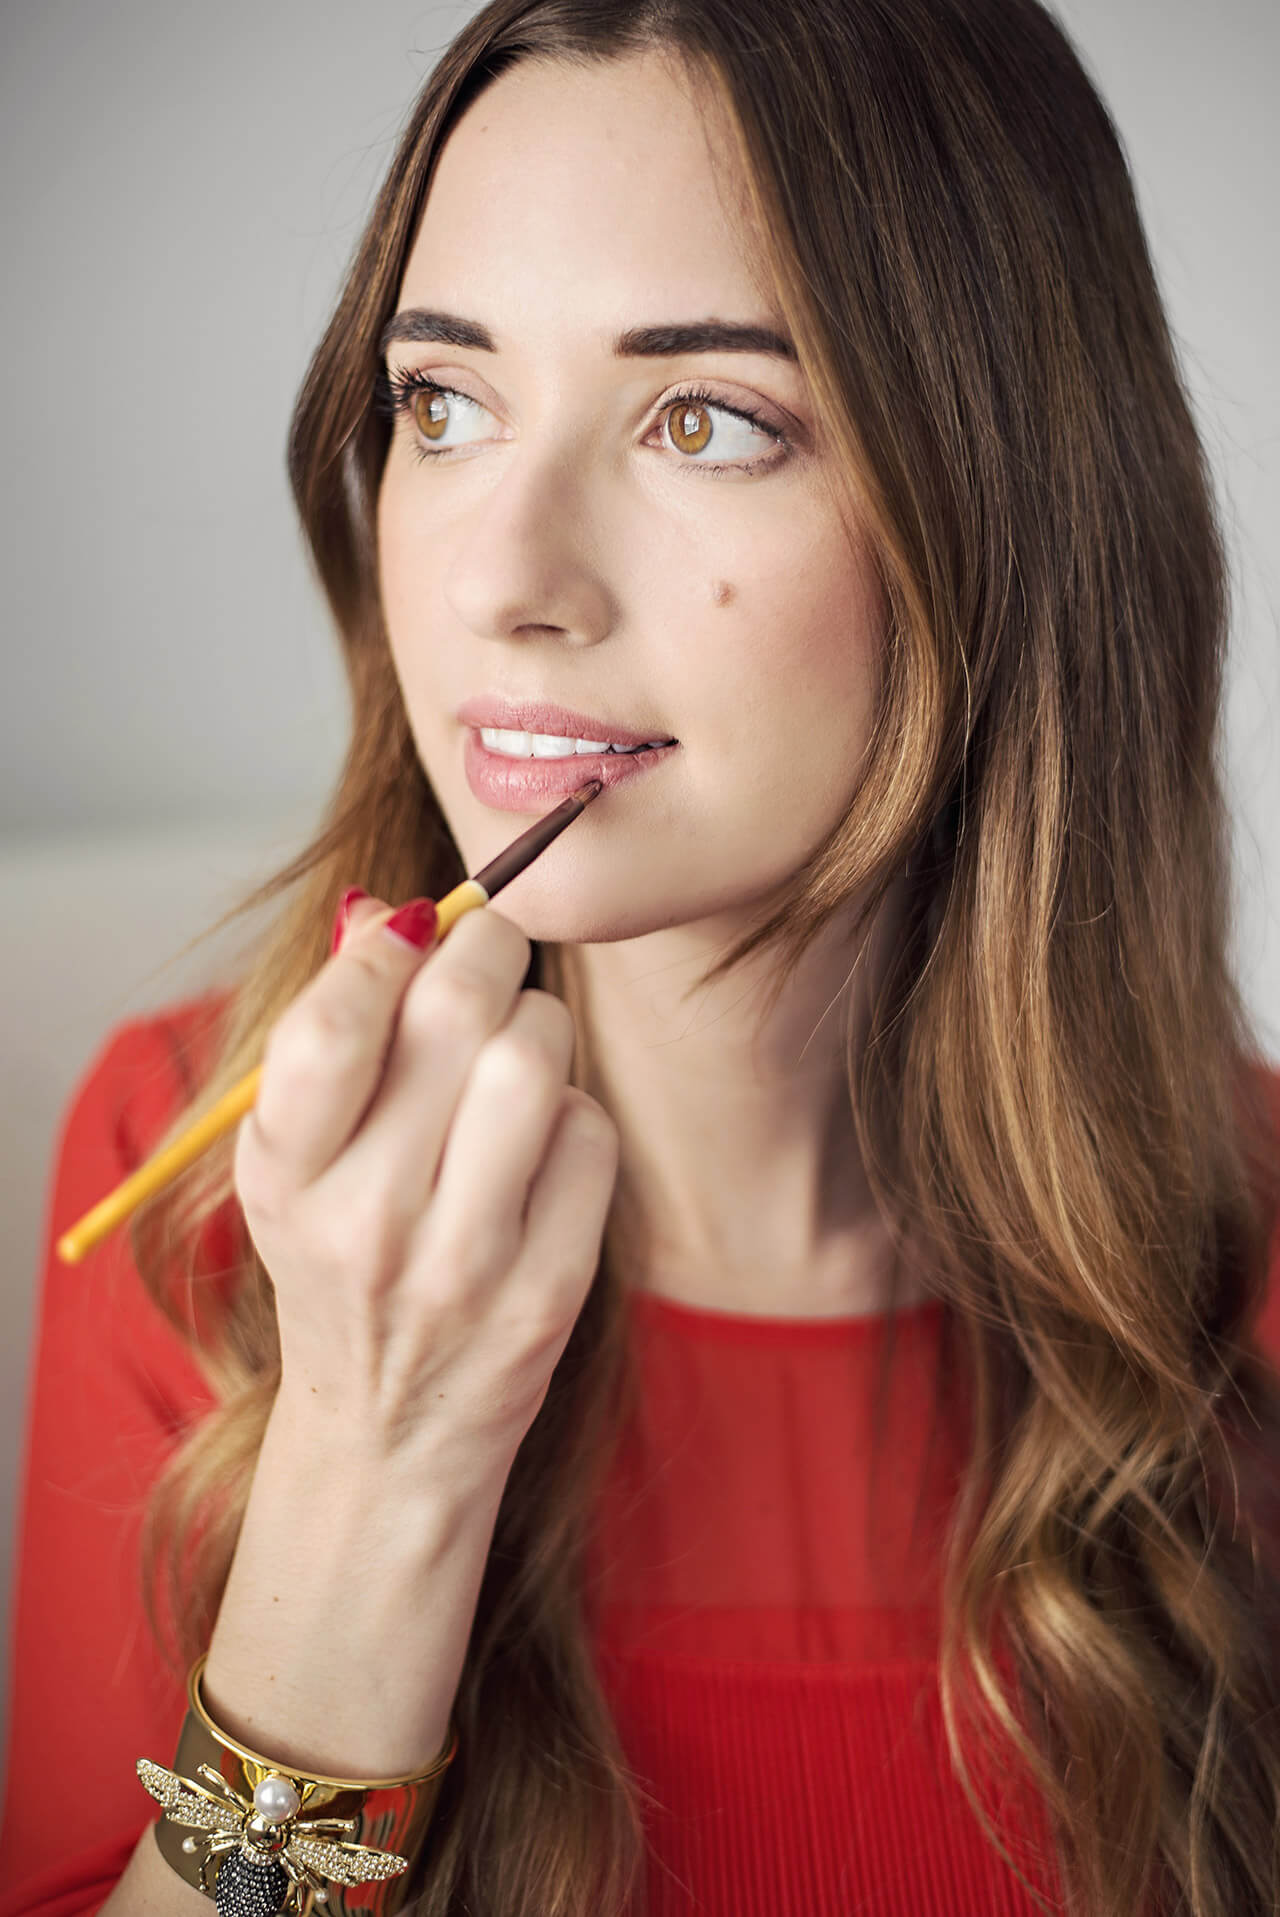 applying lipstick with a lip liner brush allows for a more polished pout